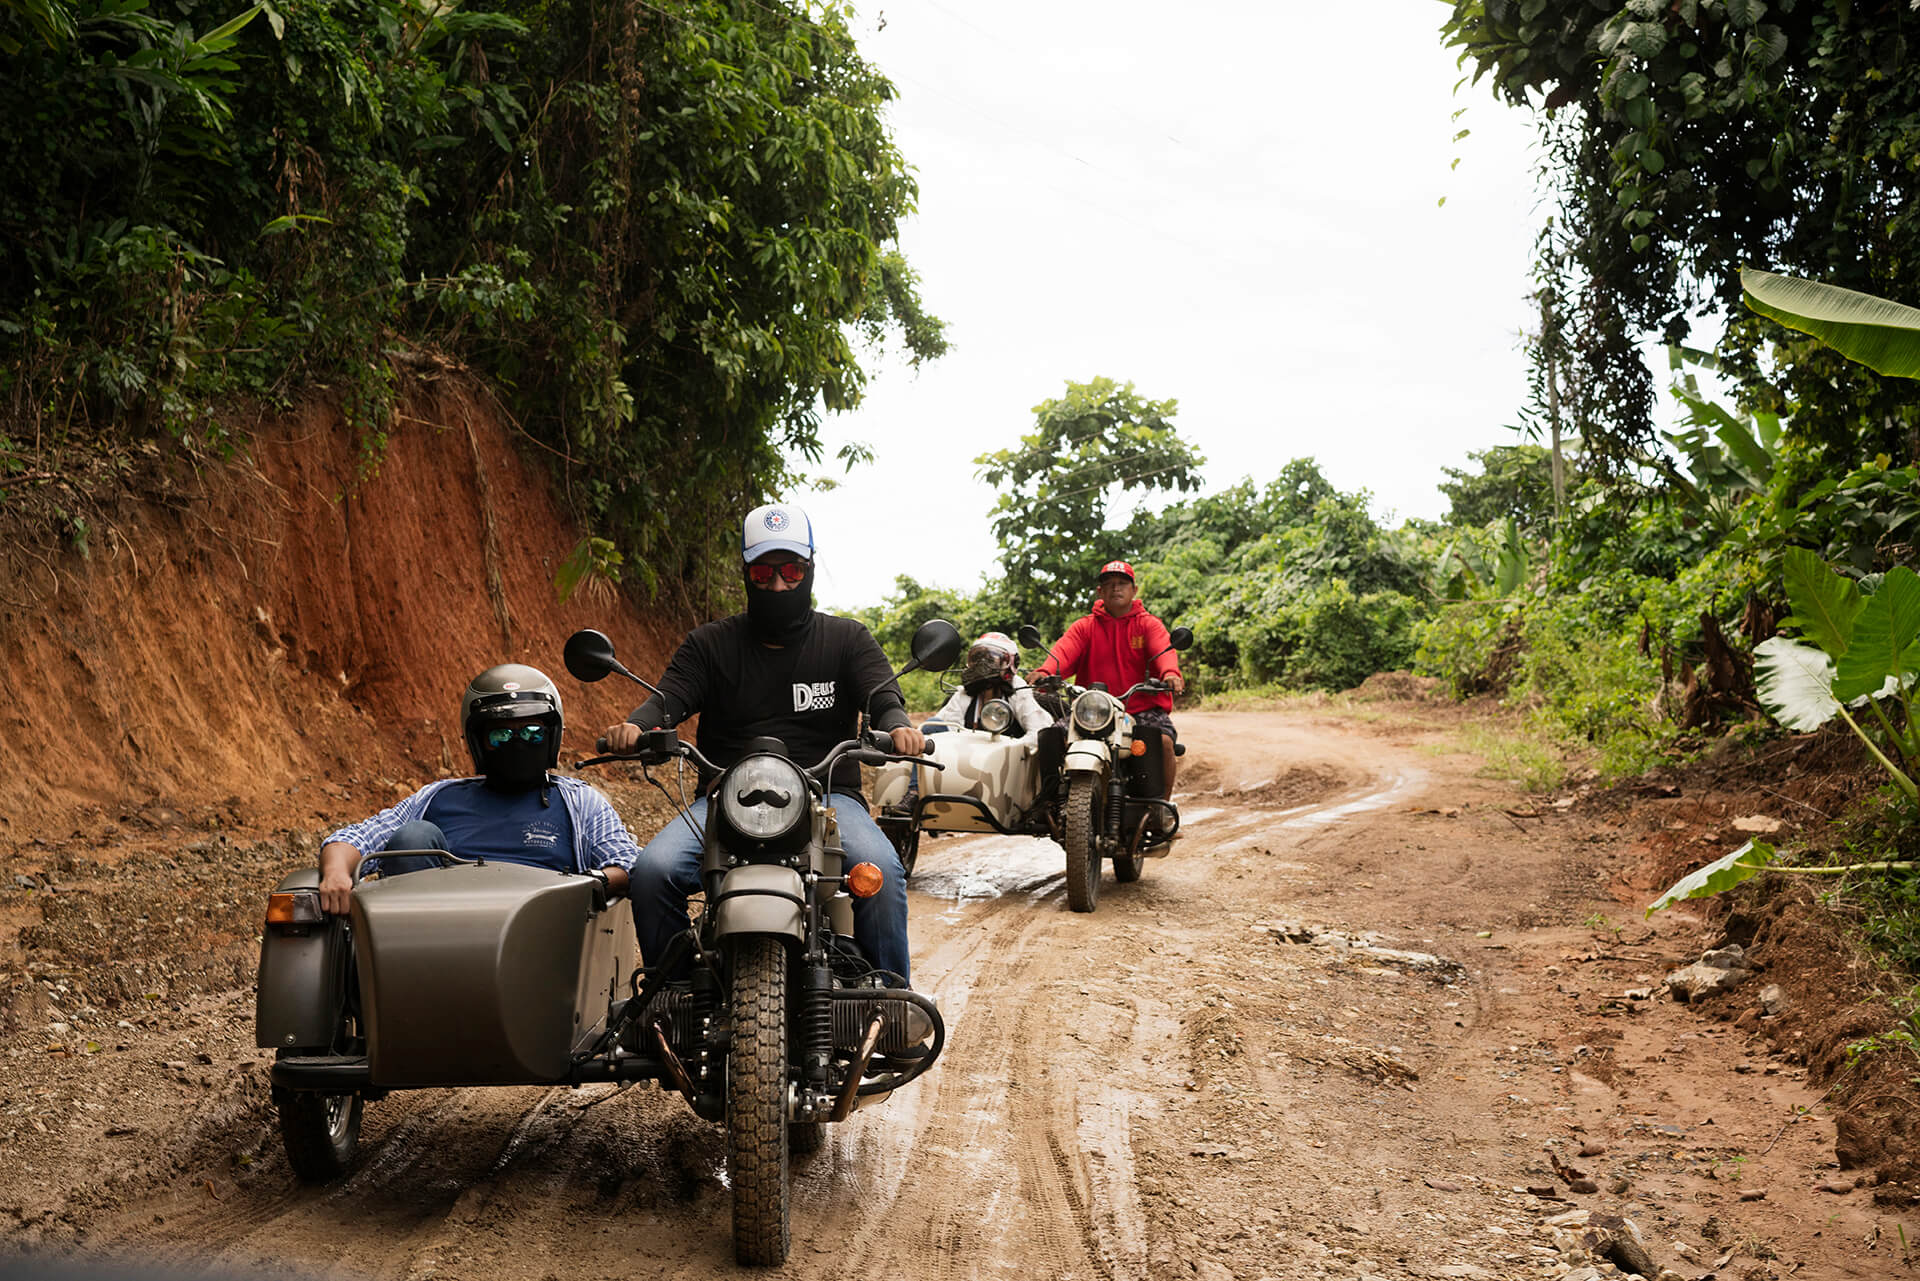 Two Urals with a rider and a passenger each, traversing through muddied roads off the beaten path.